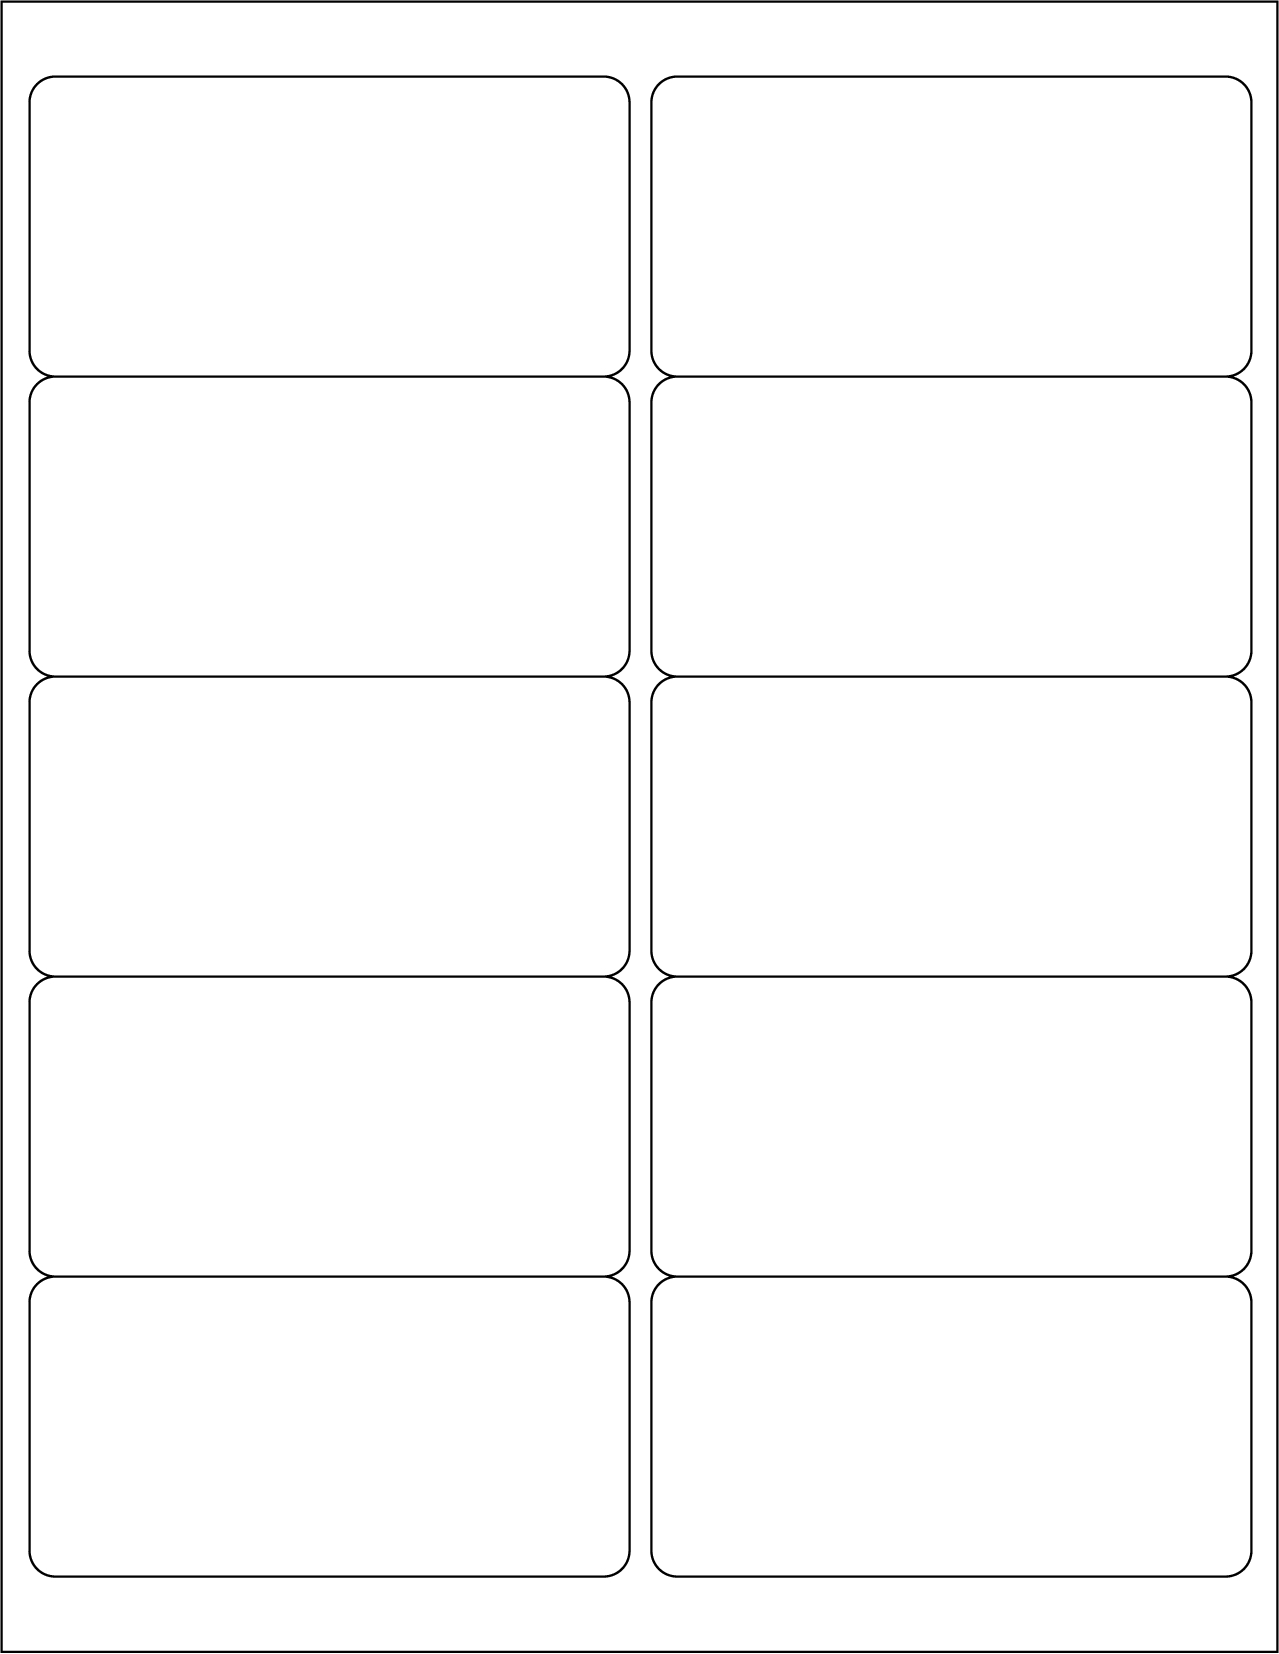 002 Template For Luggage Tag Ideas Unique Word Free Microsoft - Free Printable Label Templates For Word